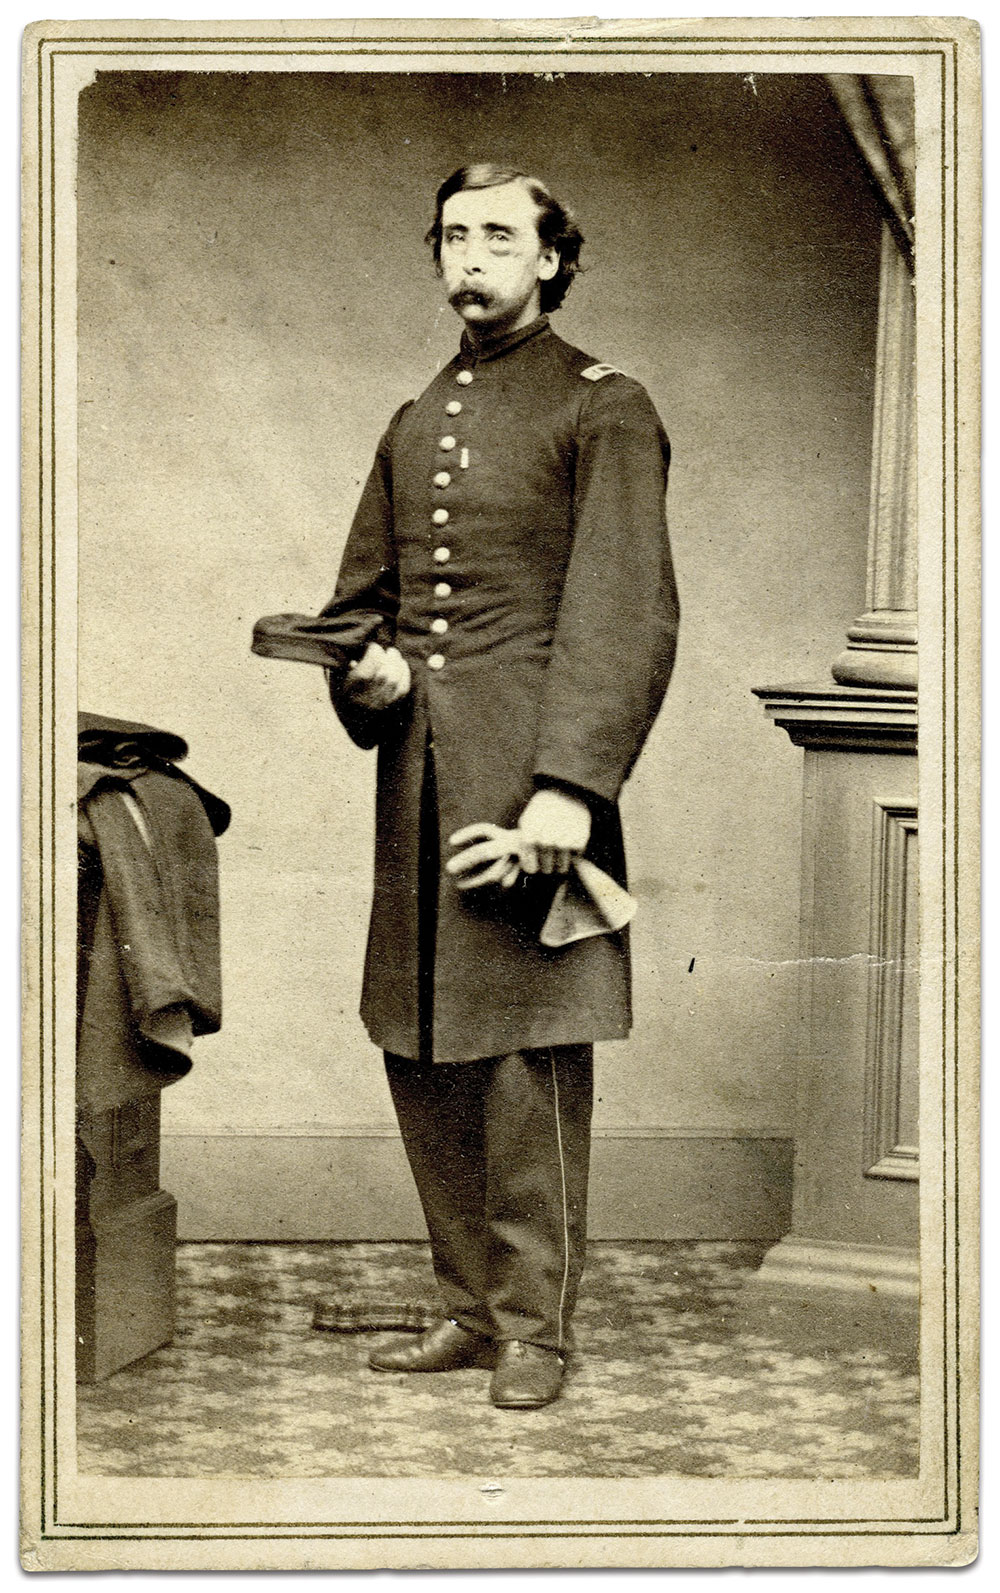 Carte de visite by Cushing of Woodstock, Vt. Francis Guber Collection.